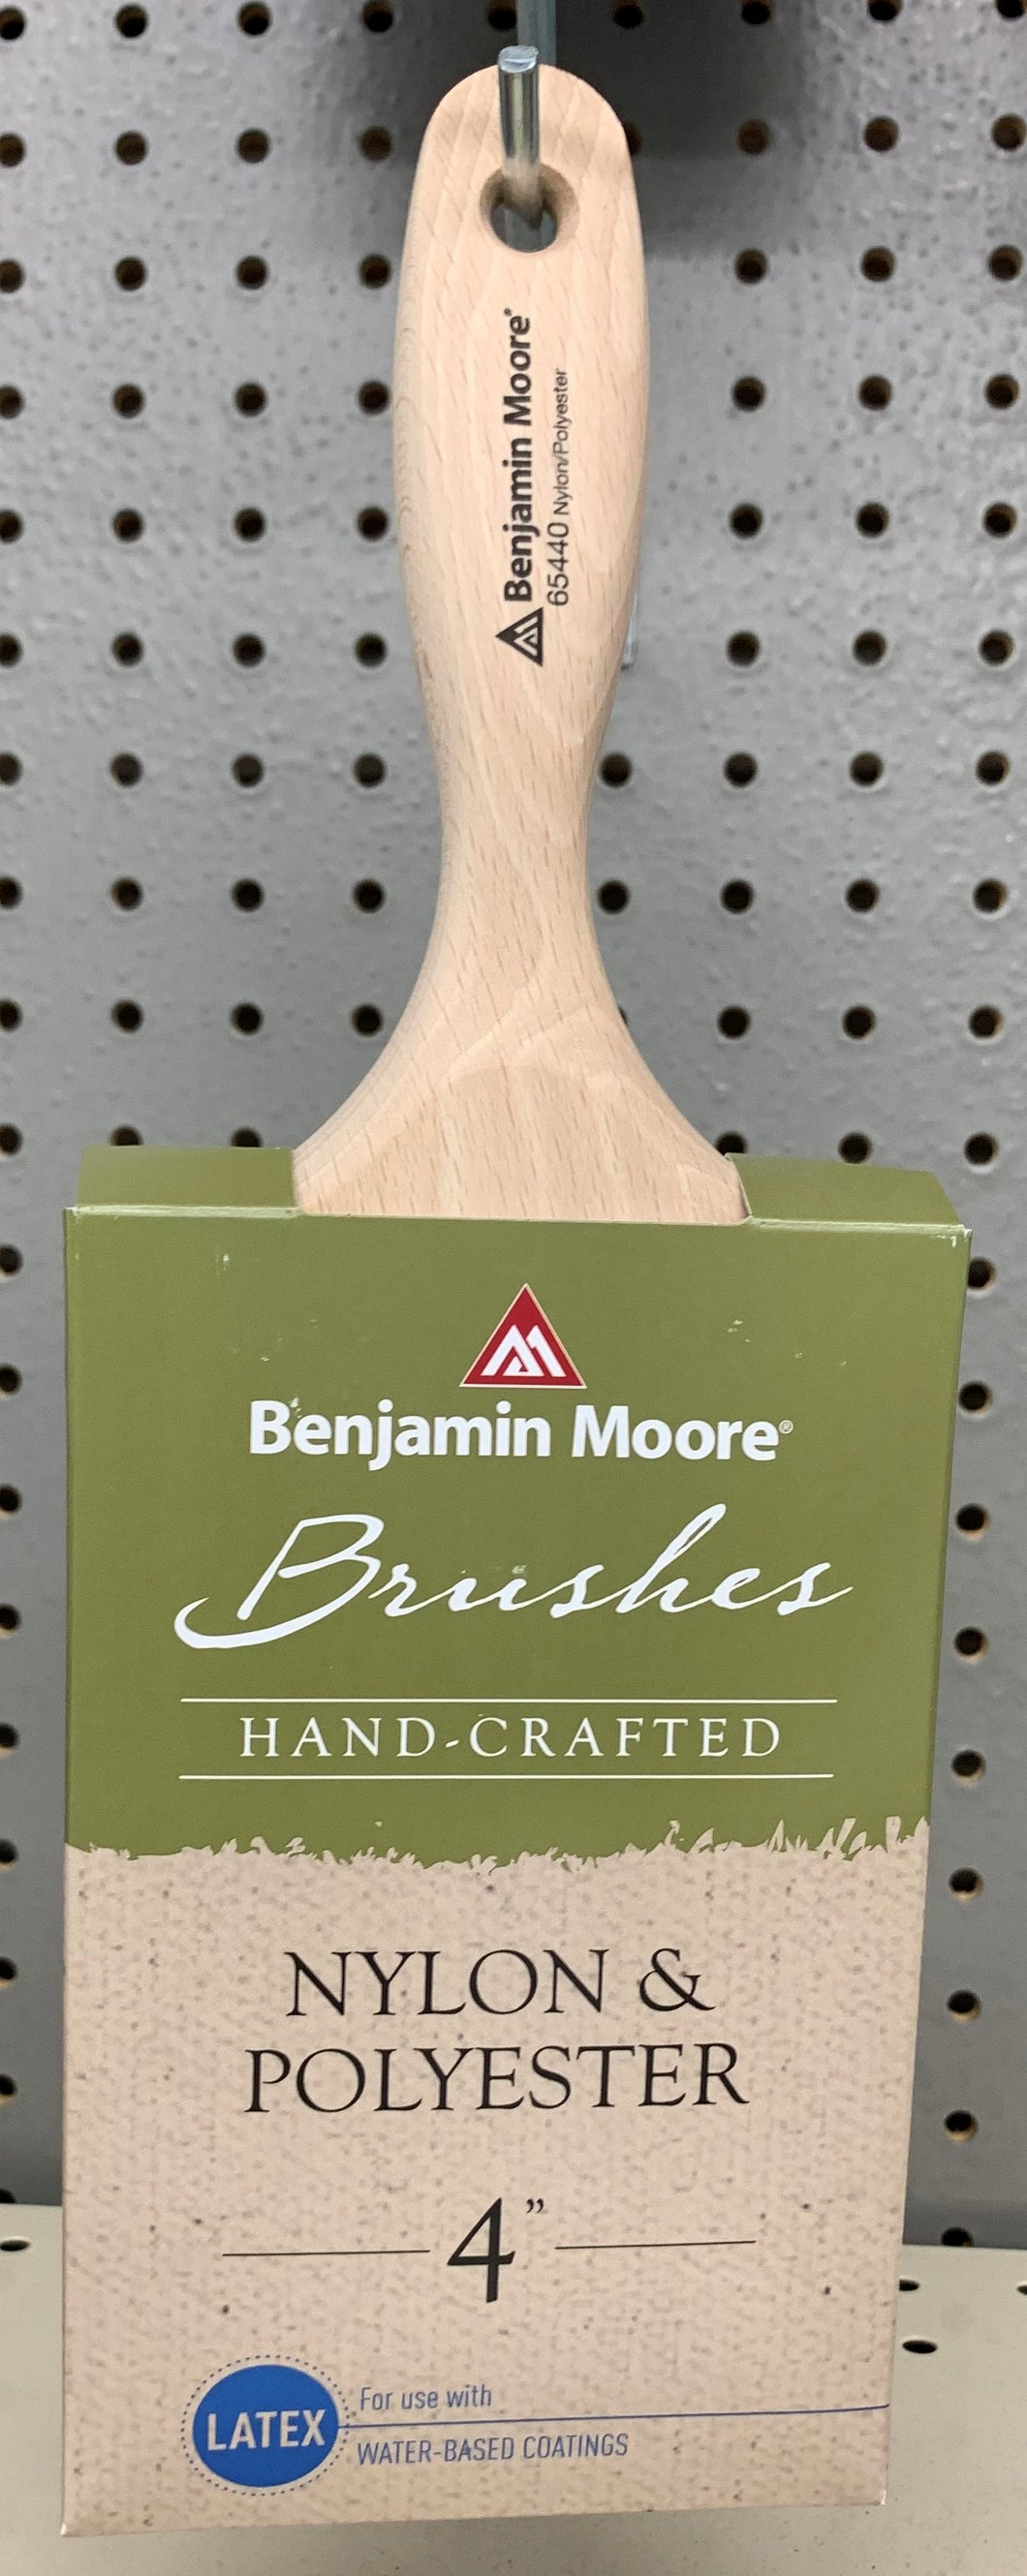 Benjamin Moore Wall Brush 4